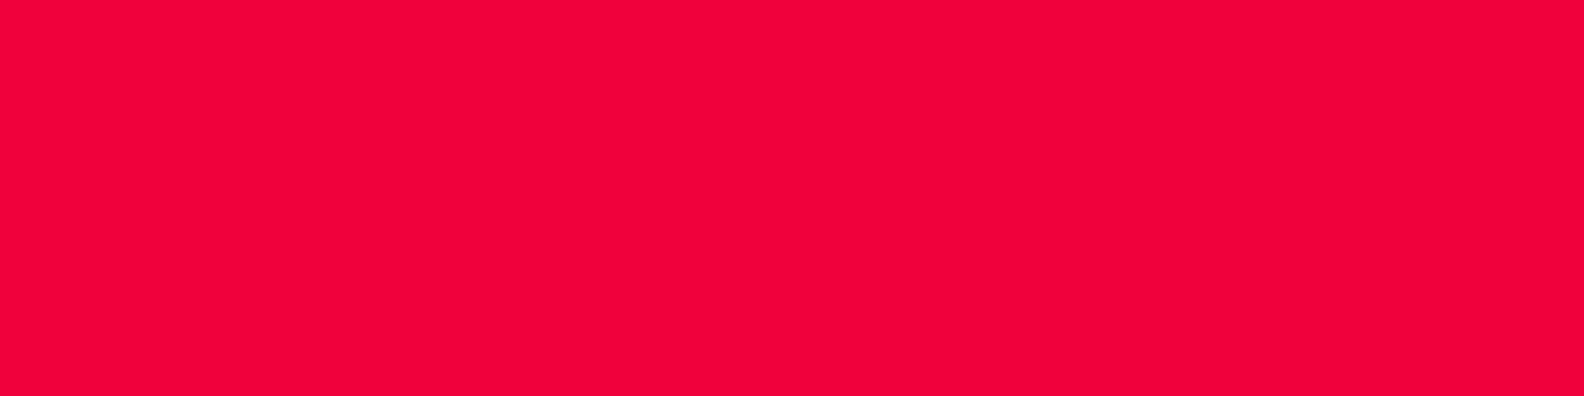 1584x396 Red Munsell Solid Color Background